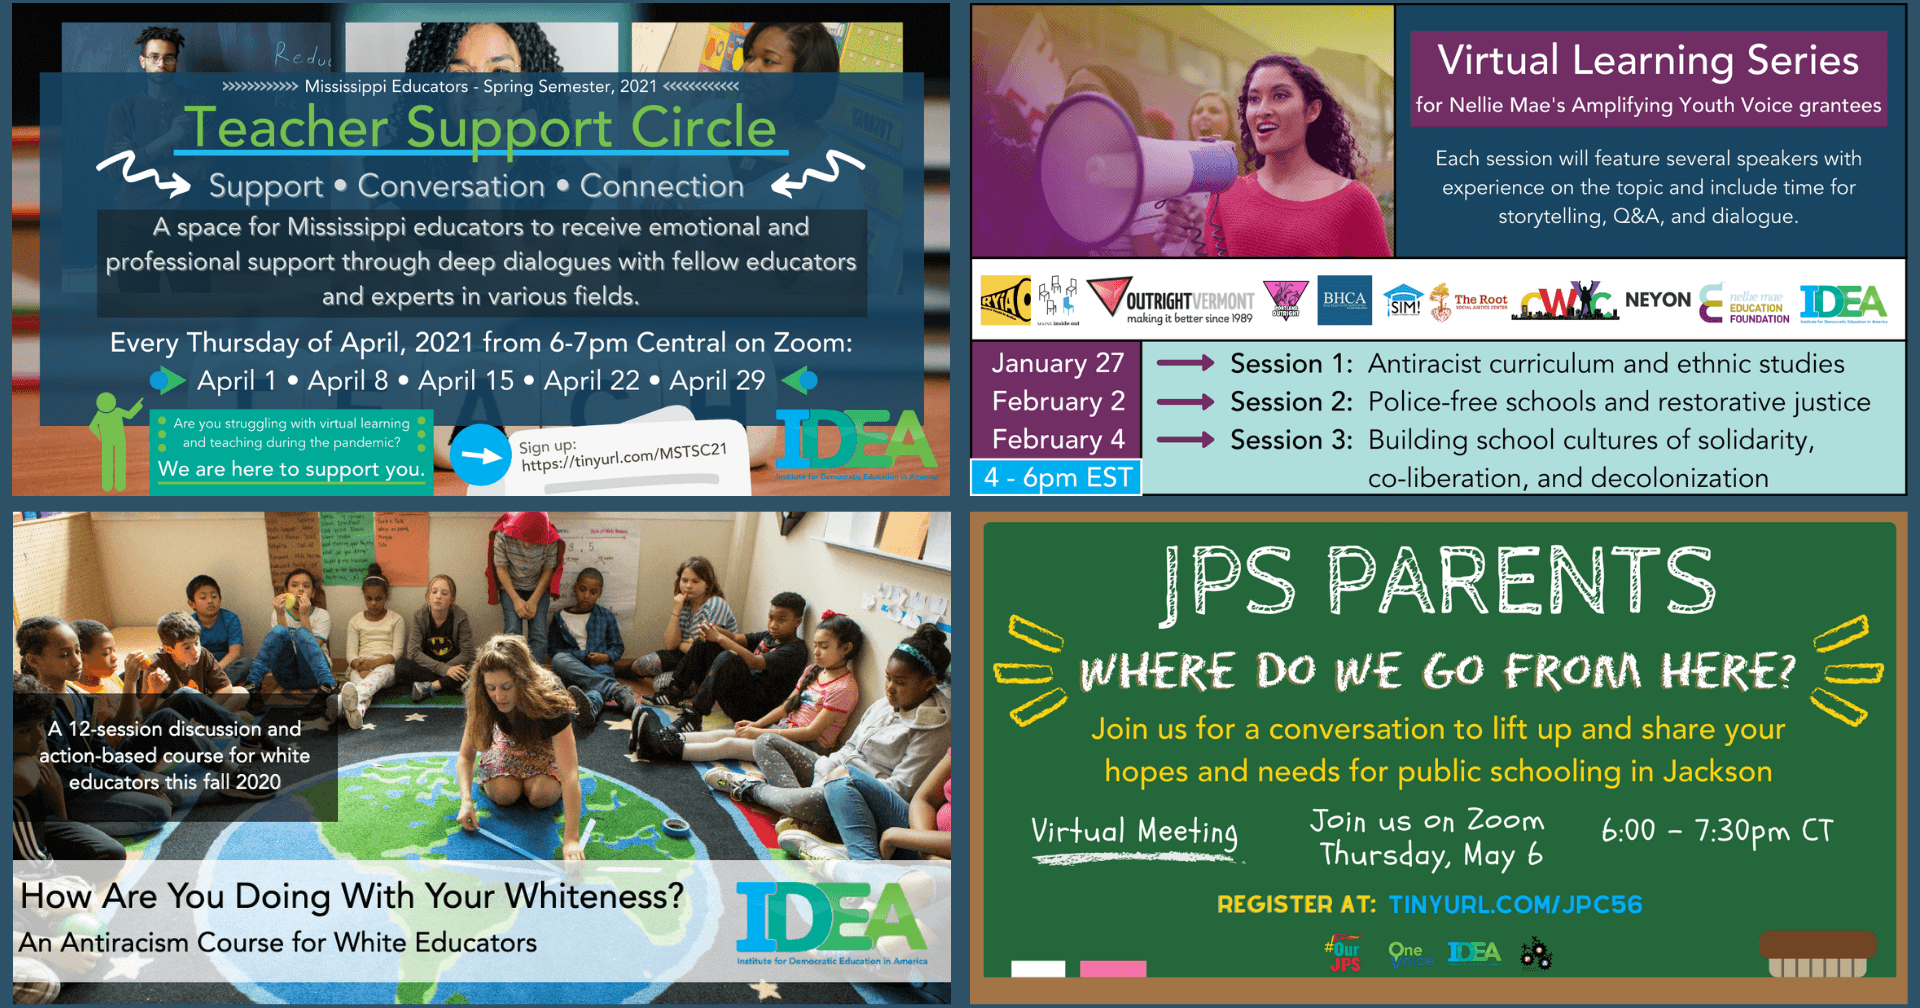 Looking Ahead + New IDEA Website, Staff & Updates - Democratic Education - Justice and Equity in Education